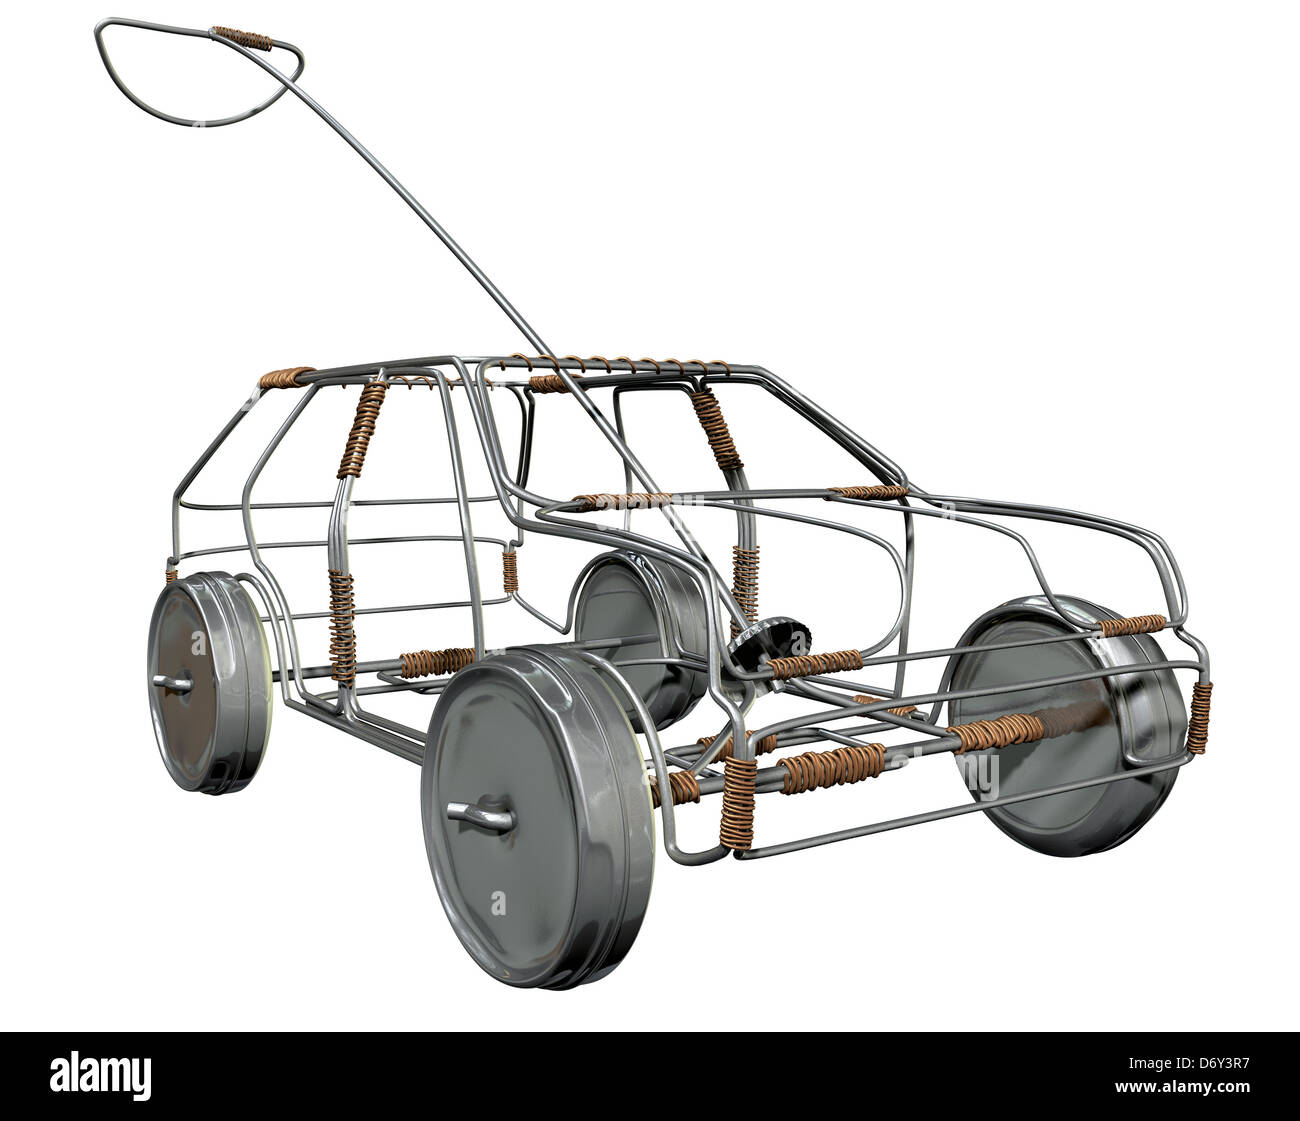 Vehicle Wiring Copper Aluminum : A traditional south african handmade wire toy car made out